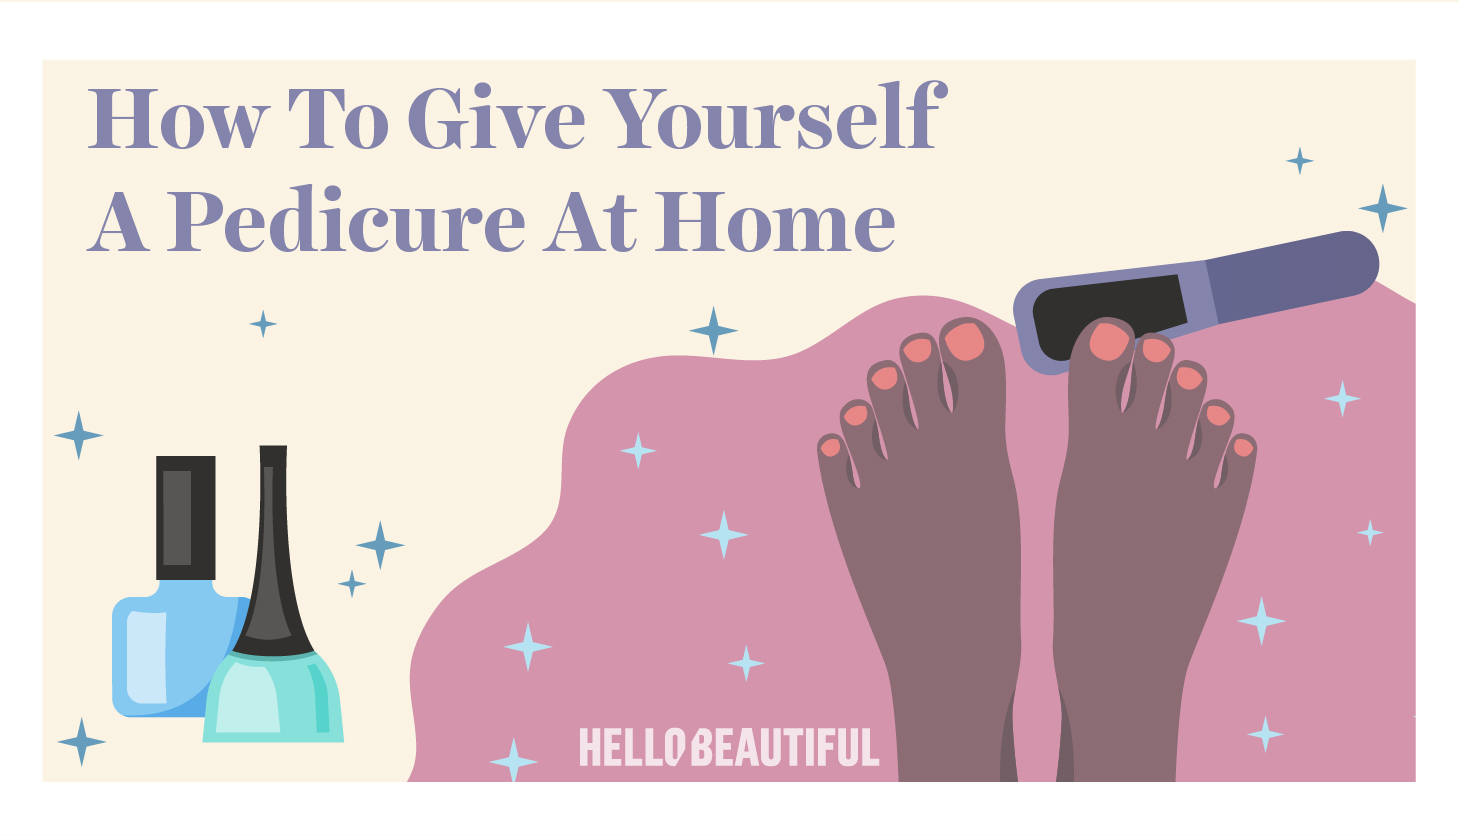 How To Give Yourself A Pedicure At Home